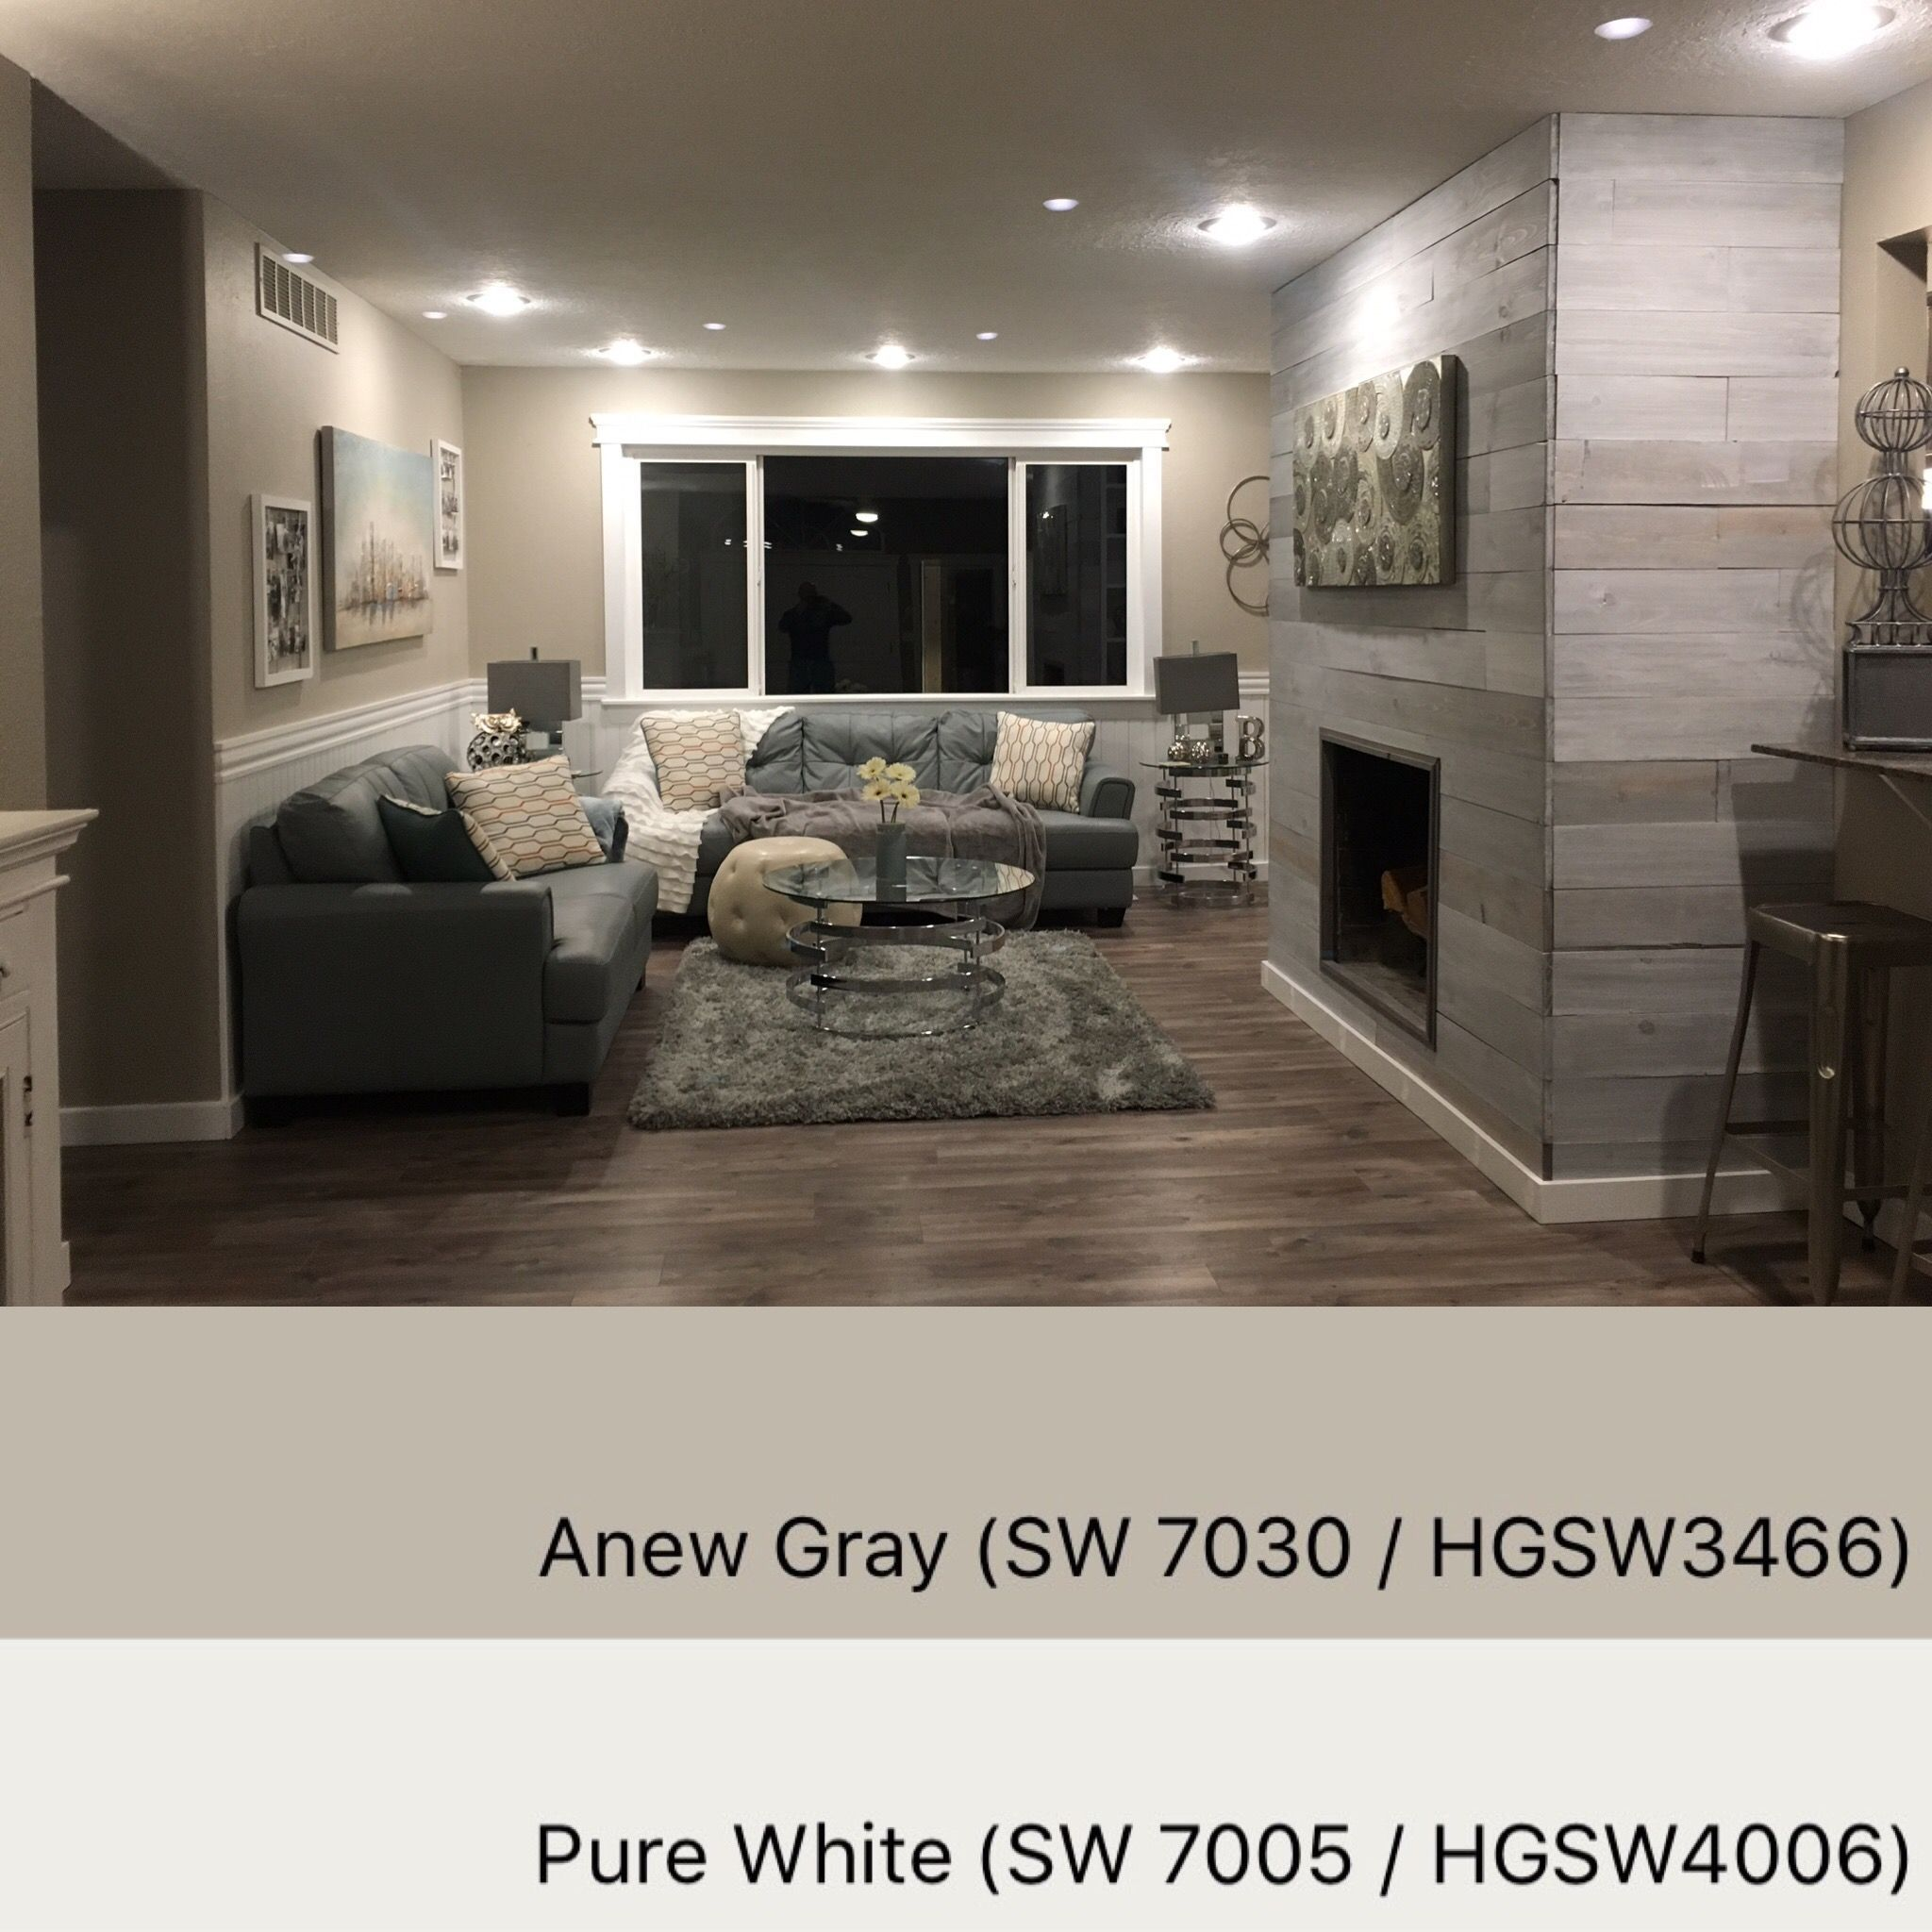 Best Sherwin Williams Paint Colors Anew Gray 7030 Pure White 7005 Small Basement Remodel 400 x 300